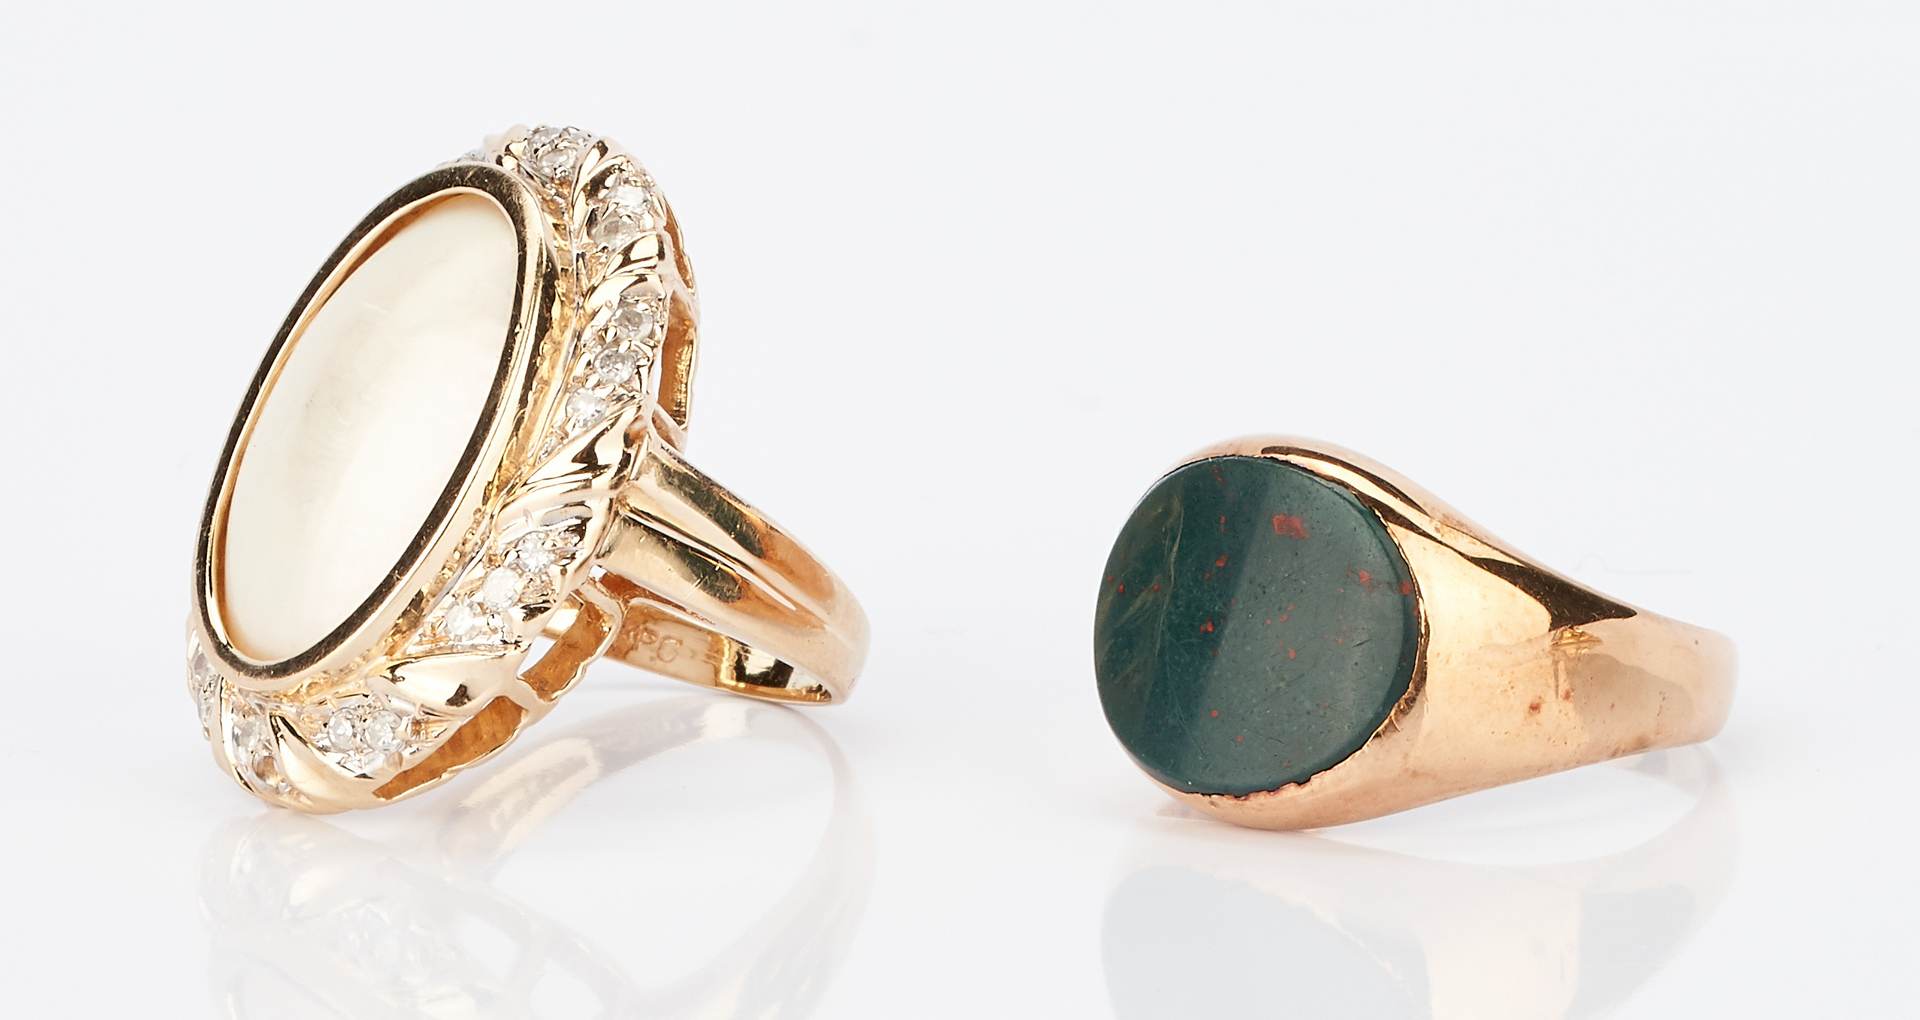 Lot 1006: 5 Ladies Gold and Gemstone Rings